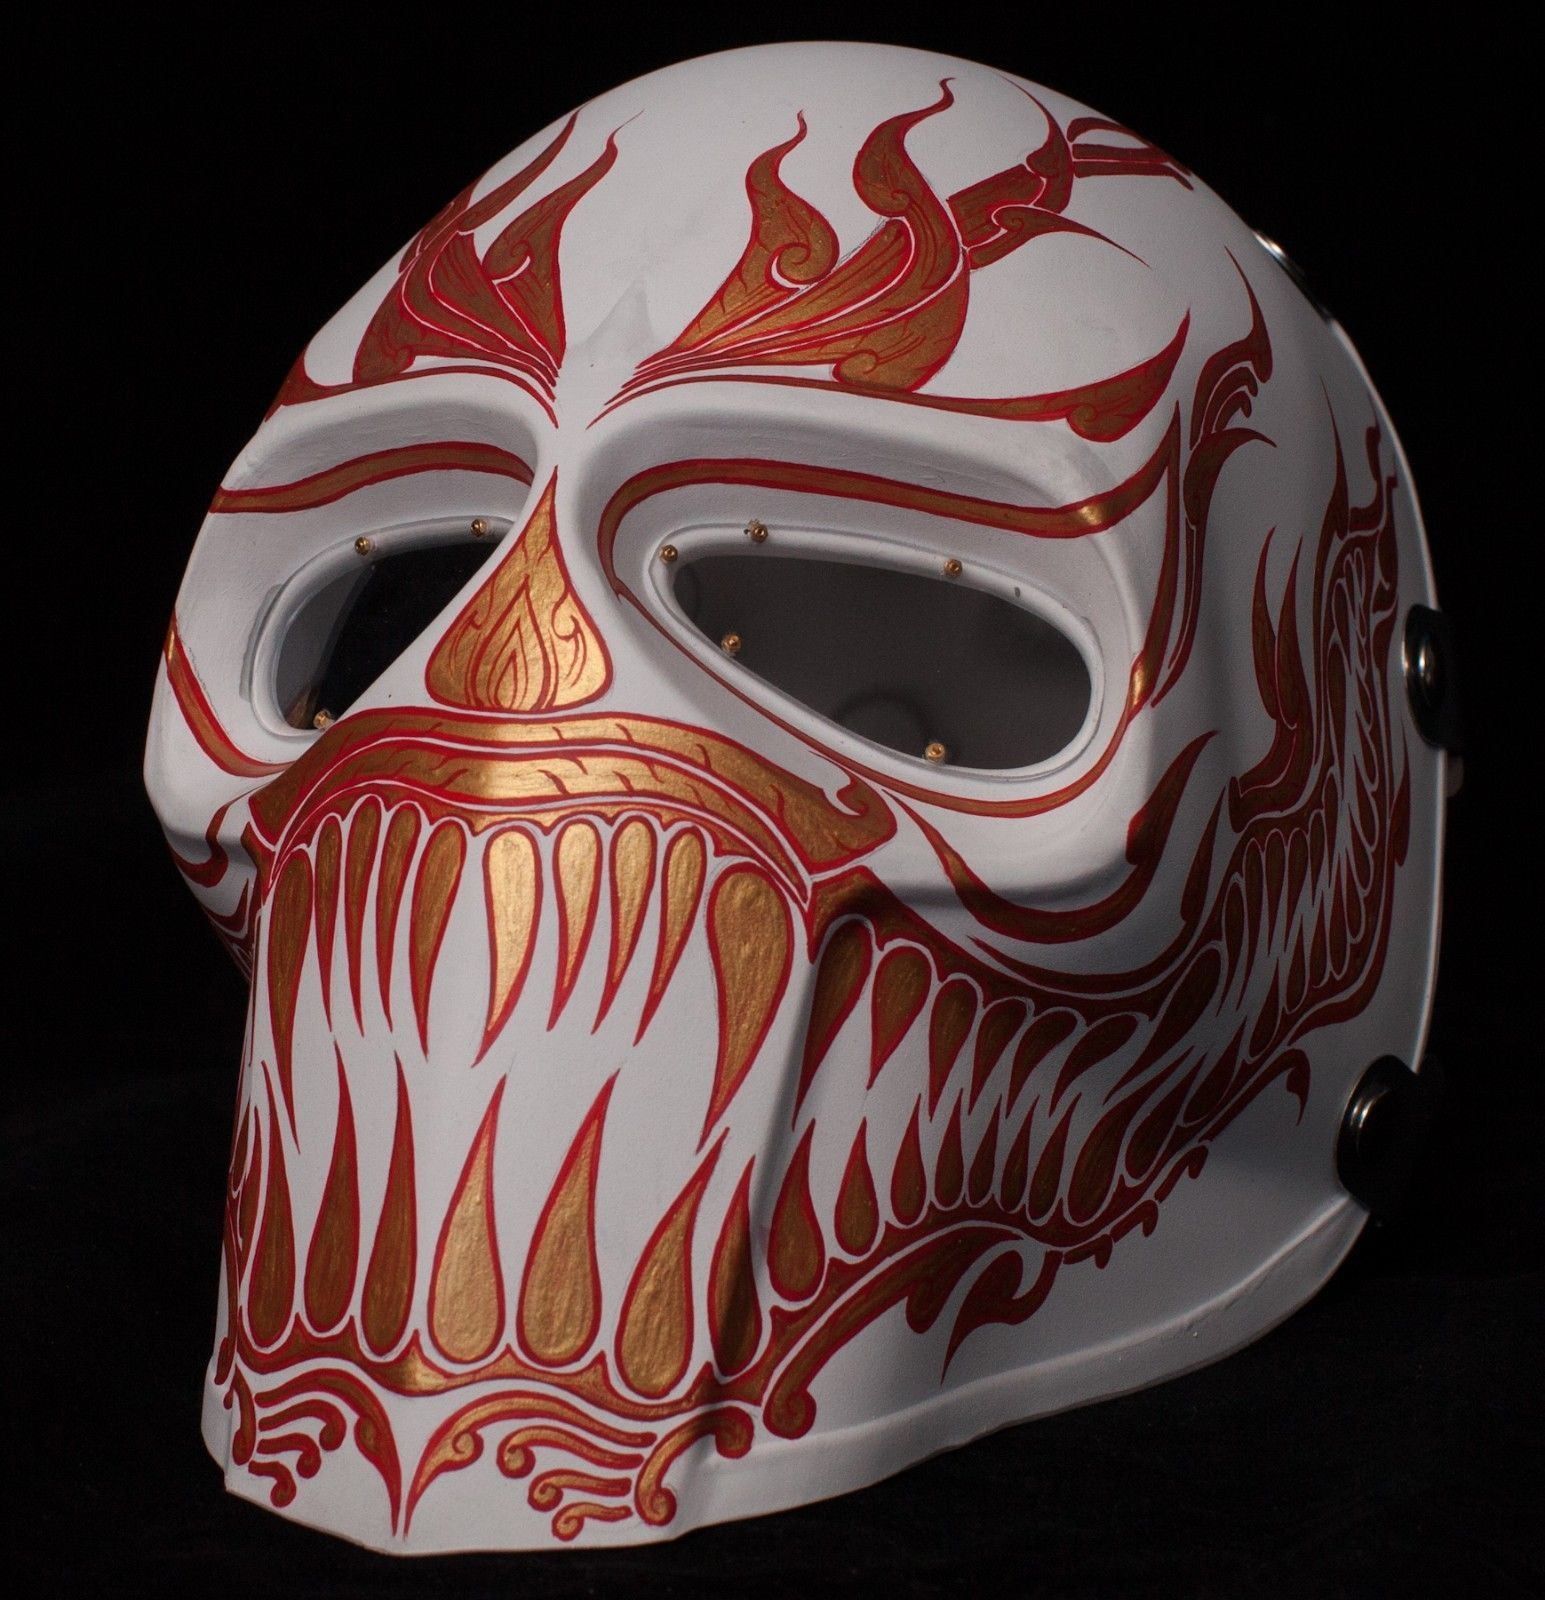 Details about Airsoft Mask Onimaru Army of Two Paintball Helmet ...